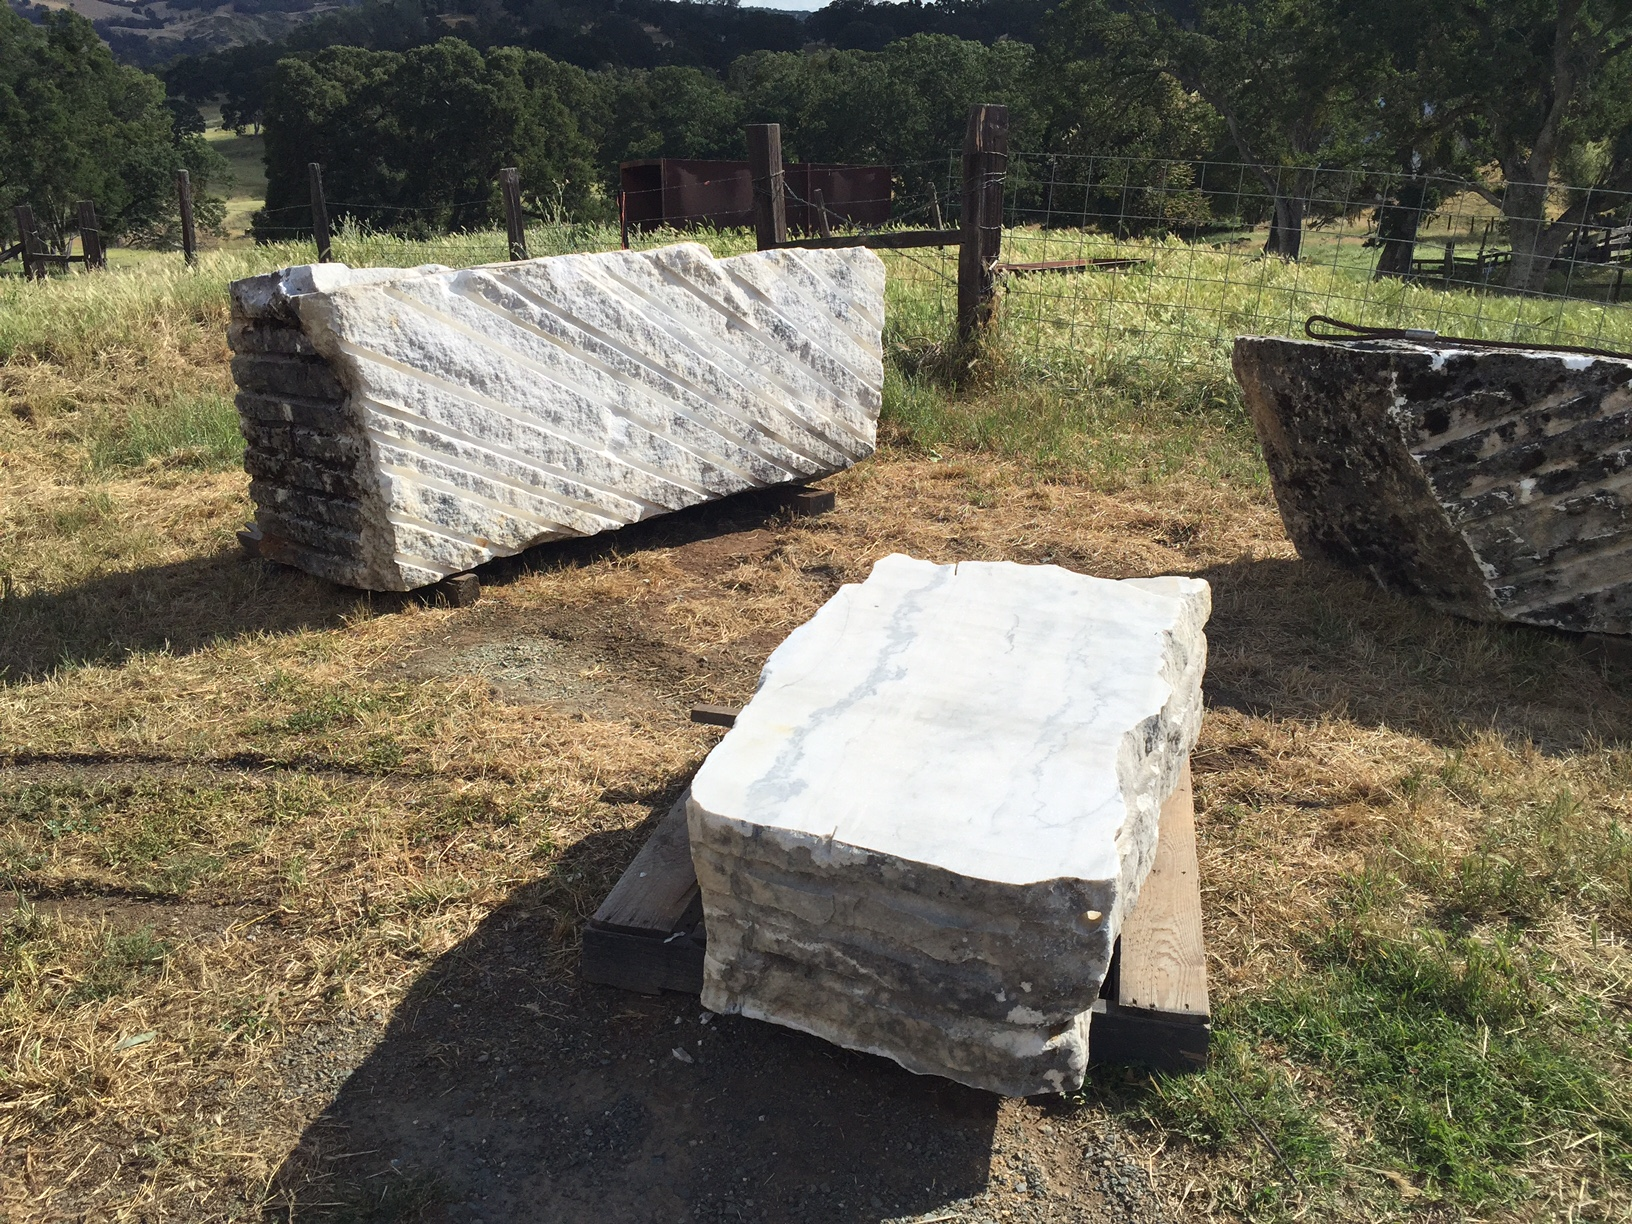 3 of the typical quarry blocks made available to us